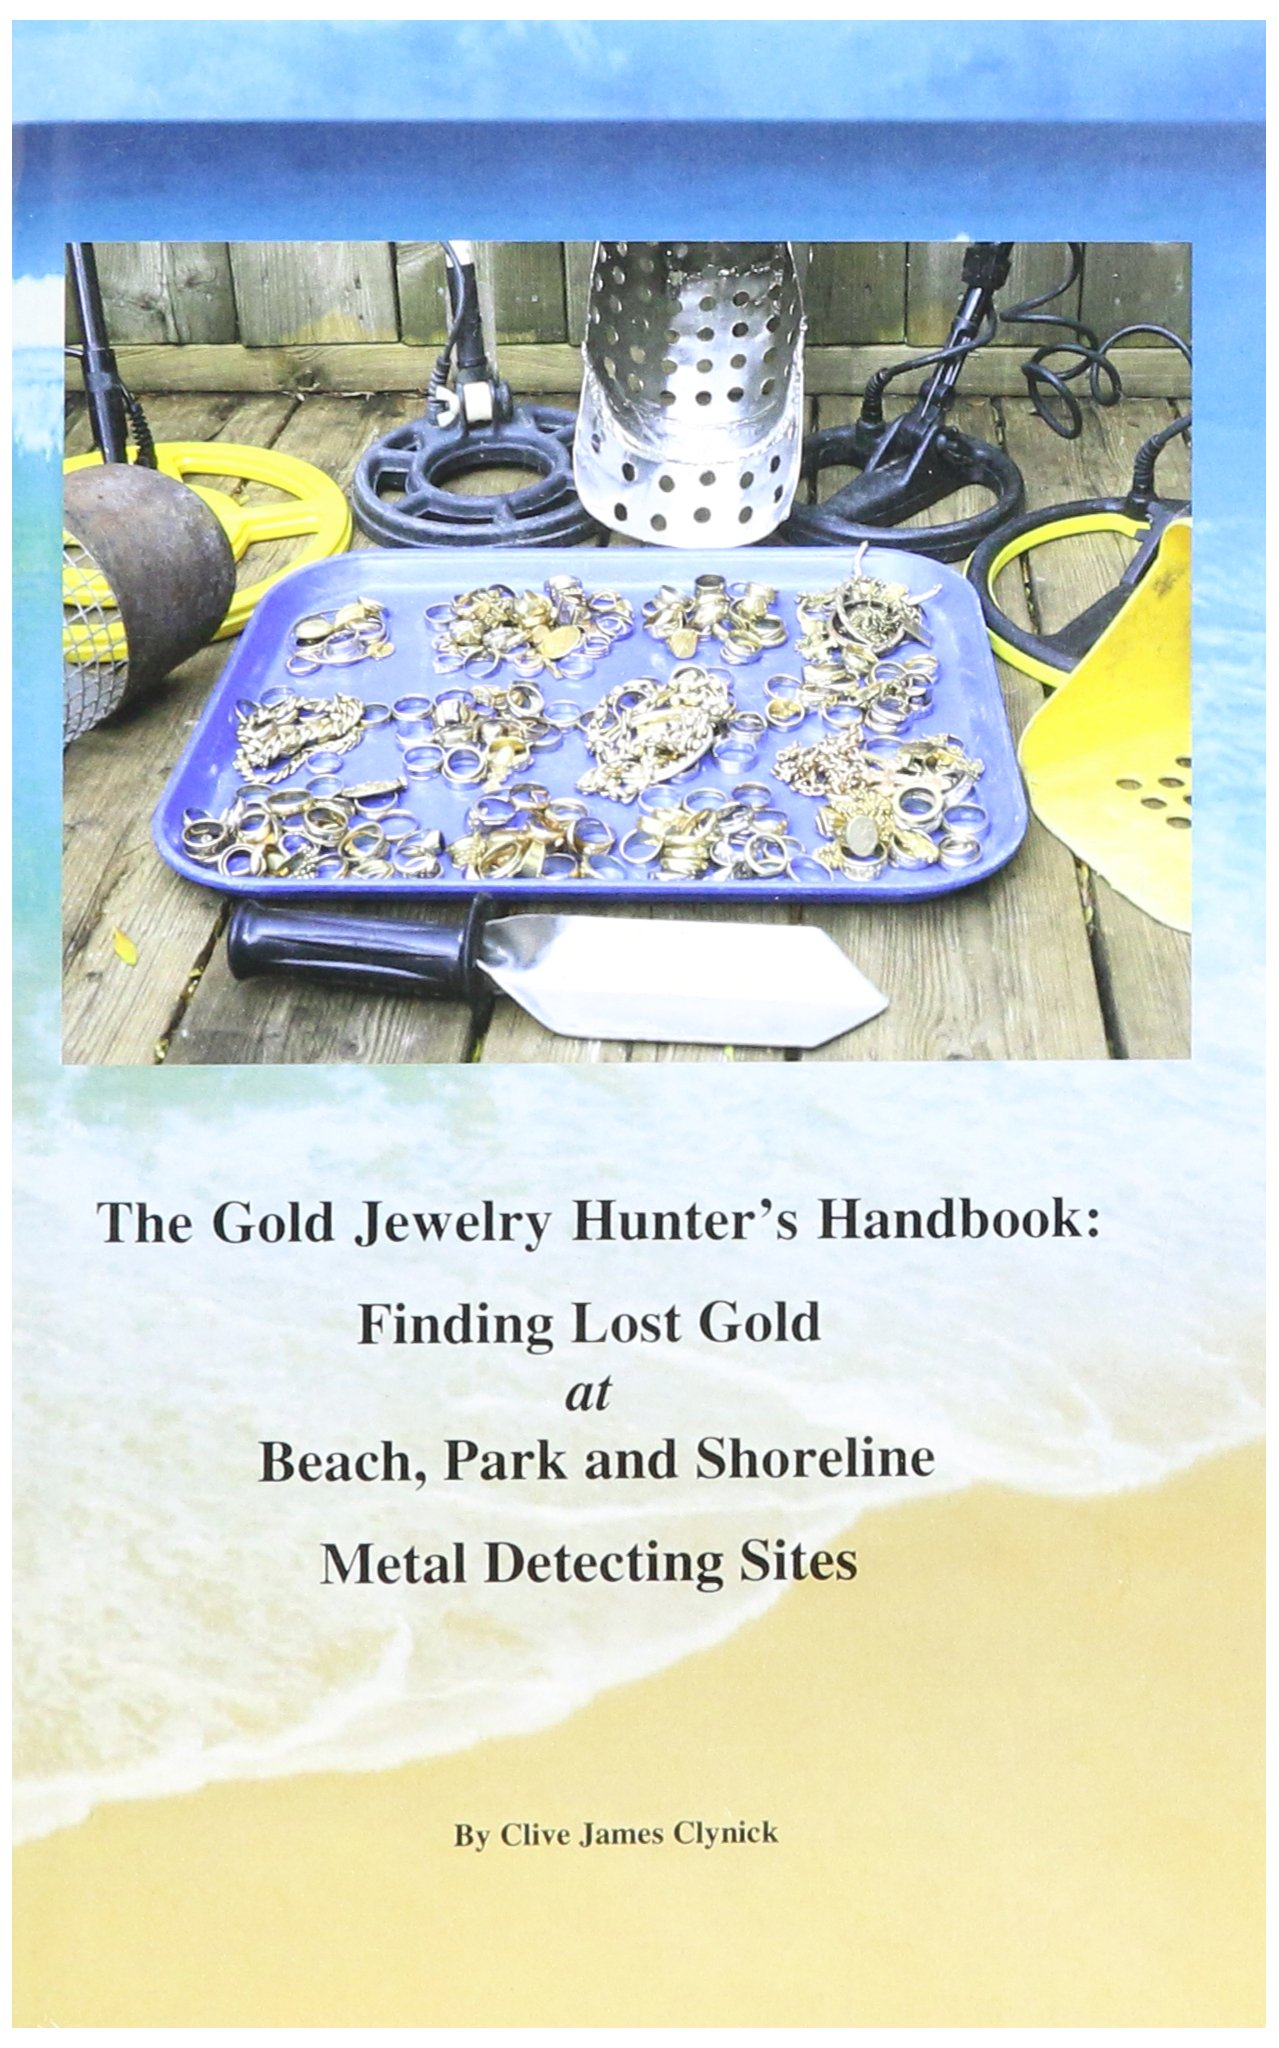 The Gold Jewelry Hunter's Handbook: Finding Lost Gold at Beach, Park and Shoreline Metal Detecting Sites by Clive Clynick